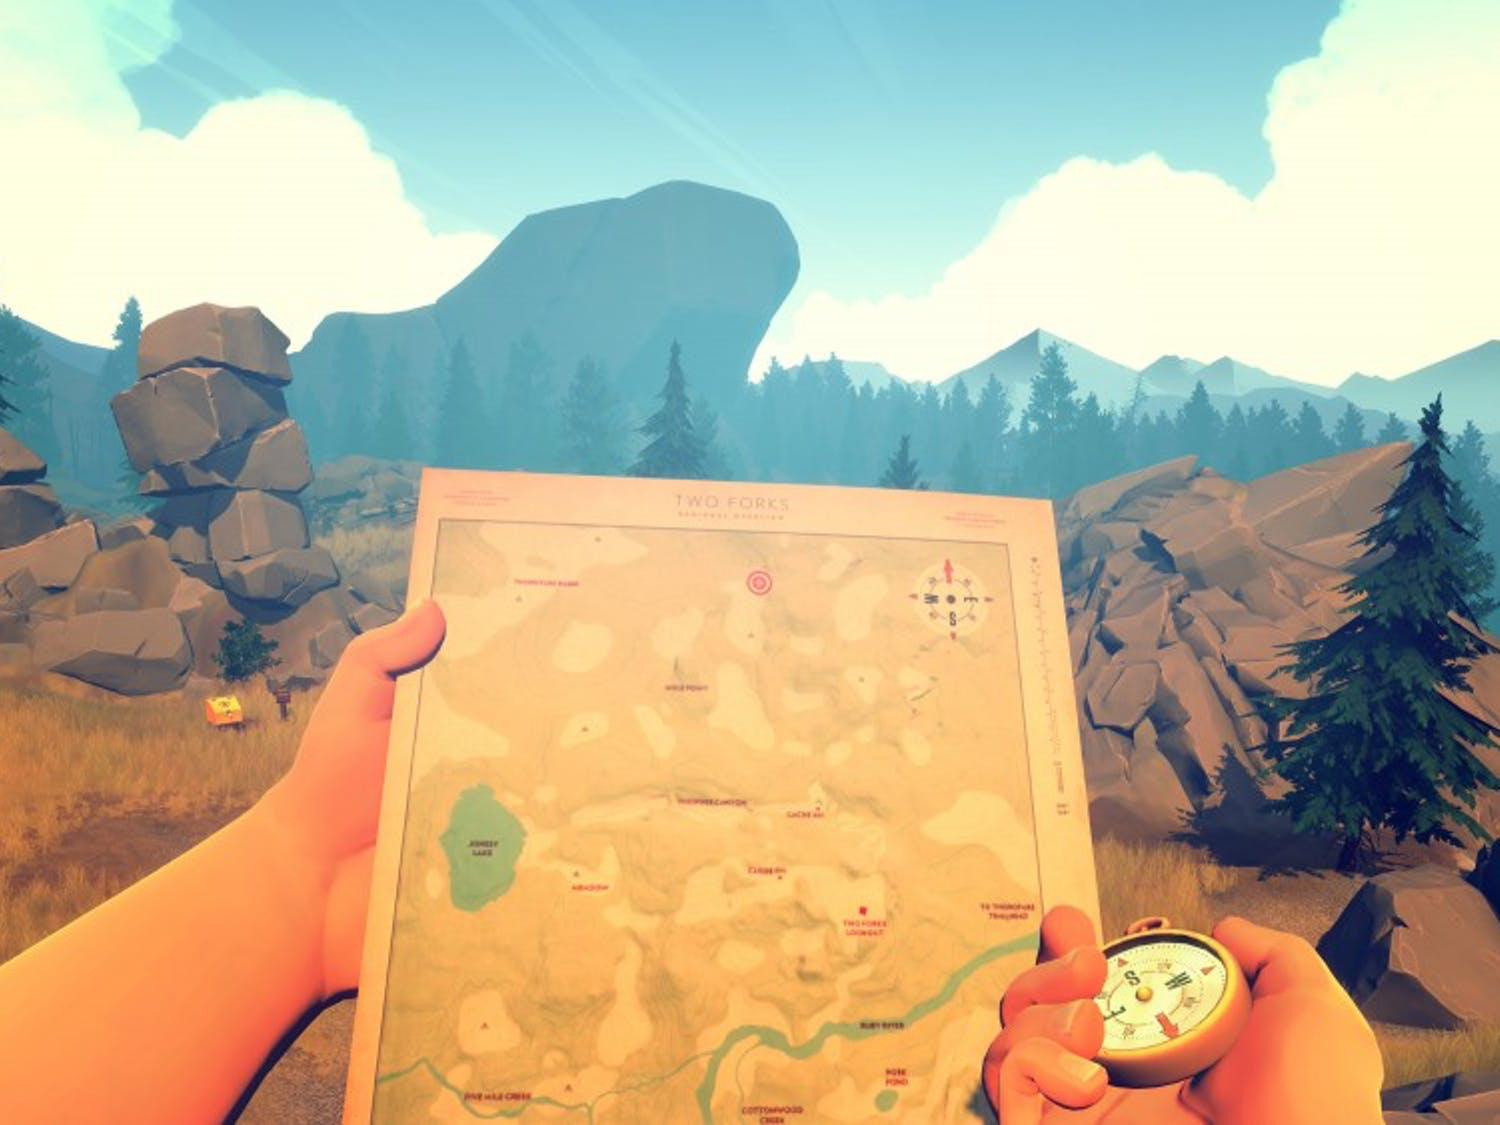 'Firewatch' released on Feb. 9 with beautiful graphics and a cutting-edge method of video-game storytelling.